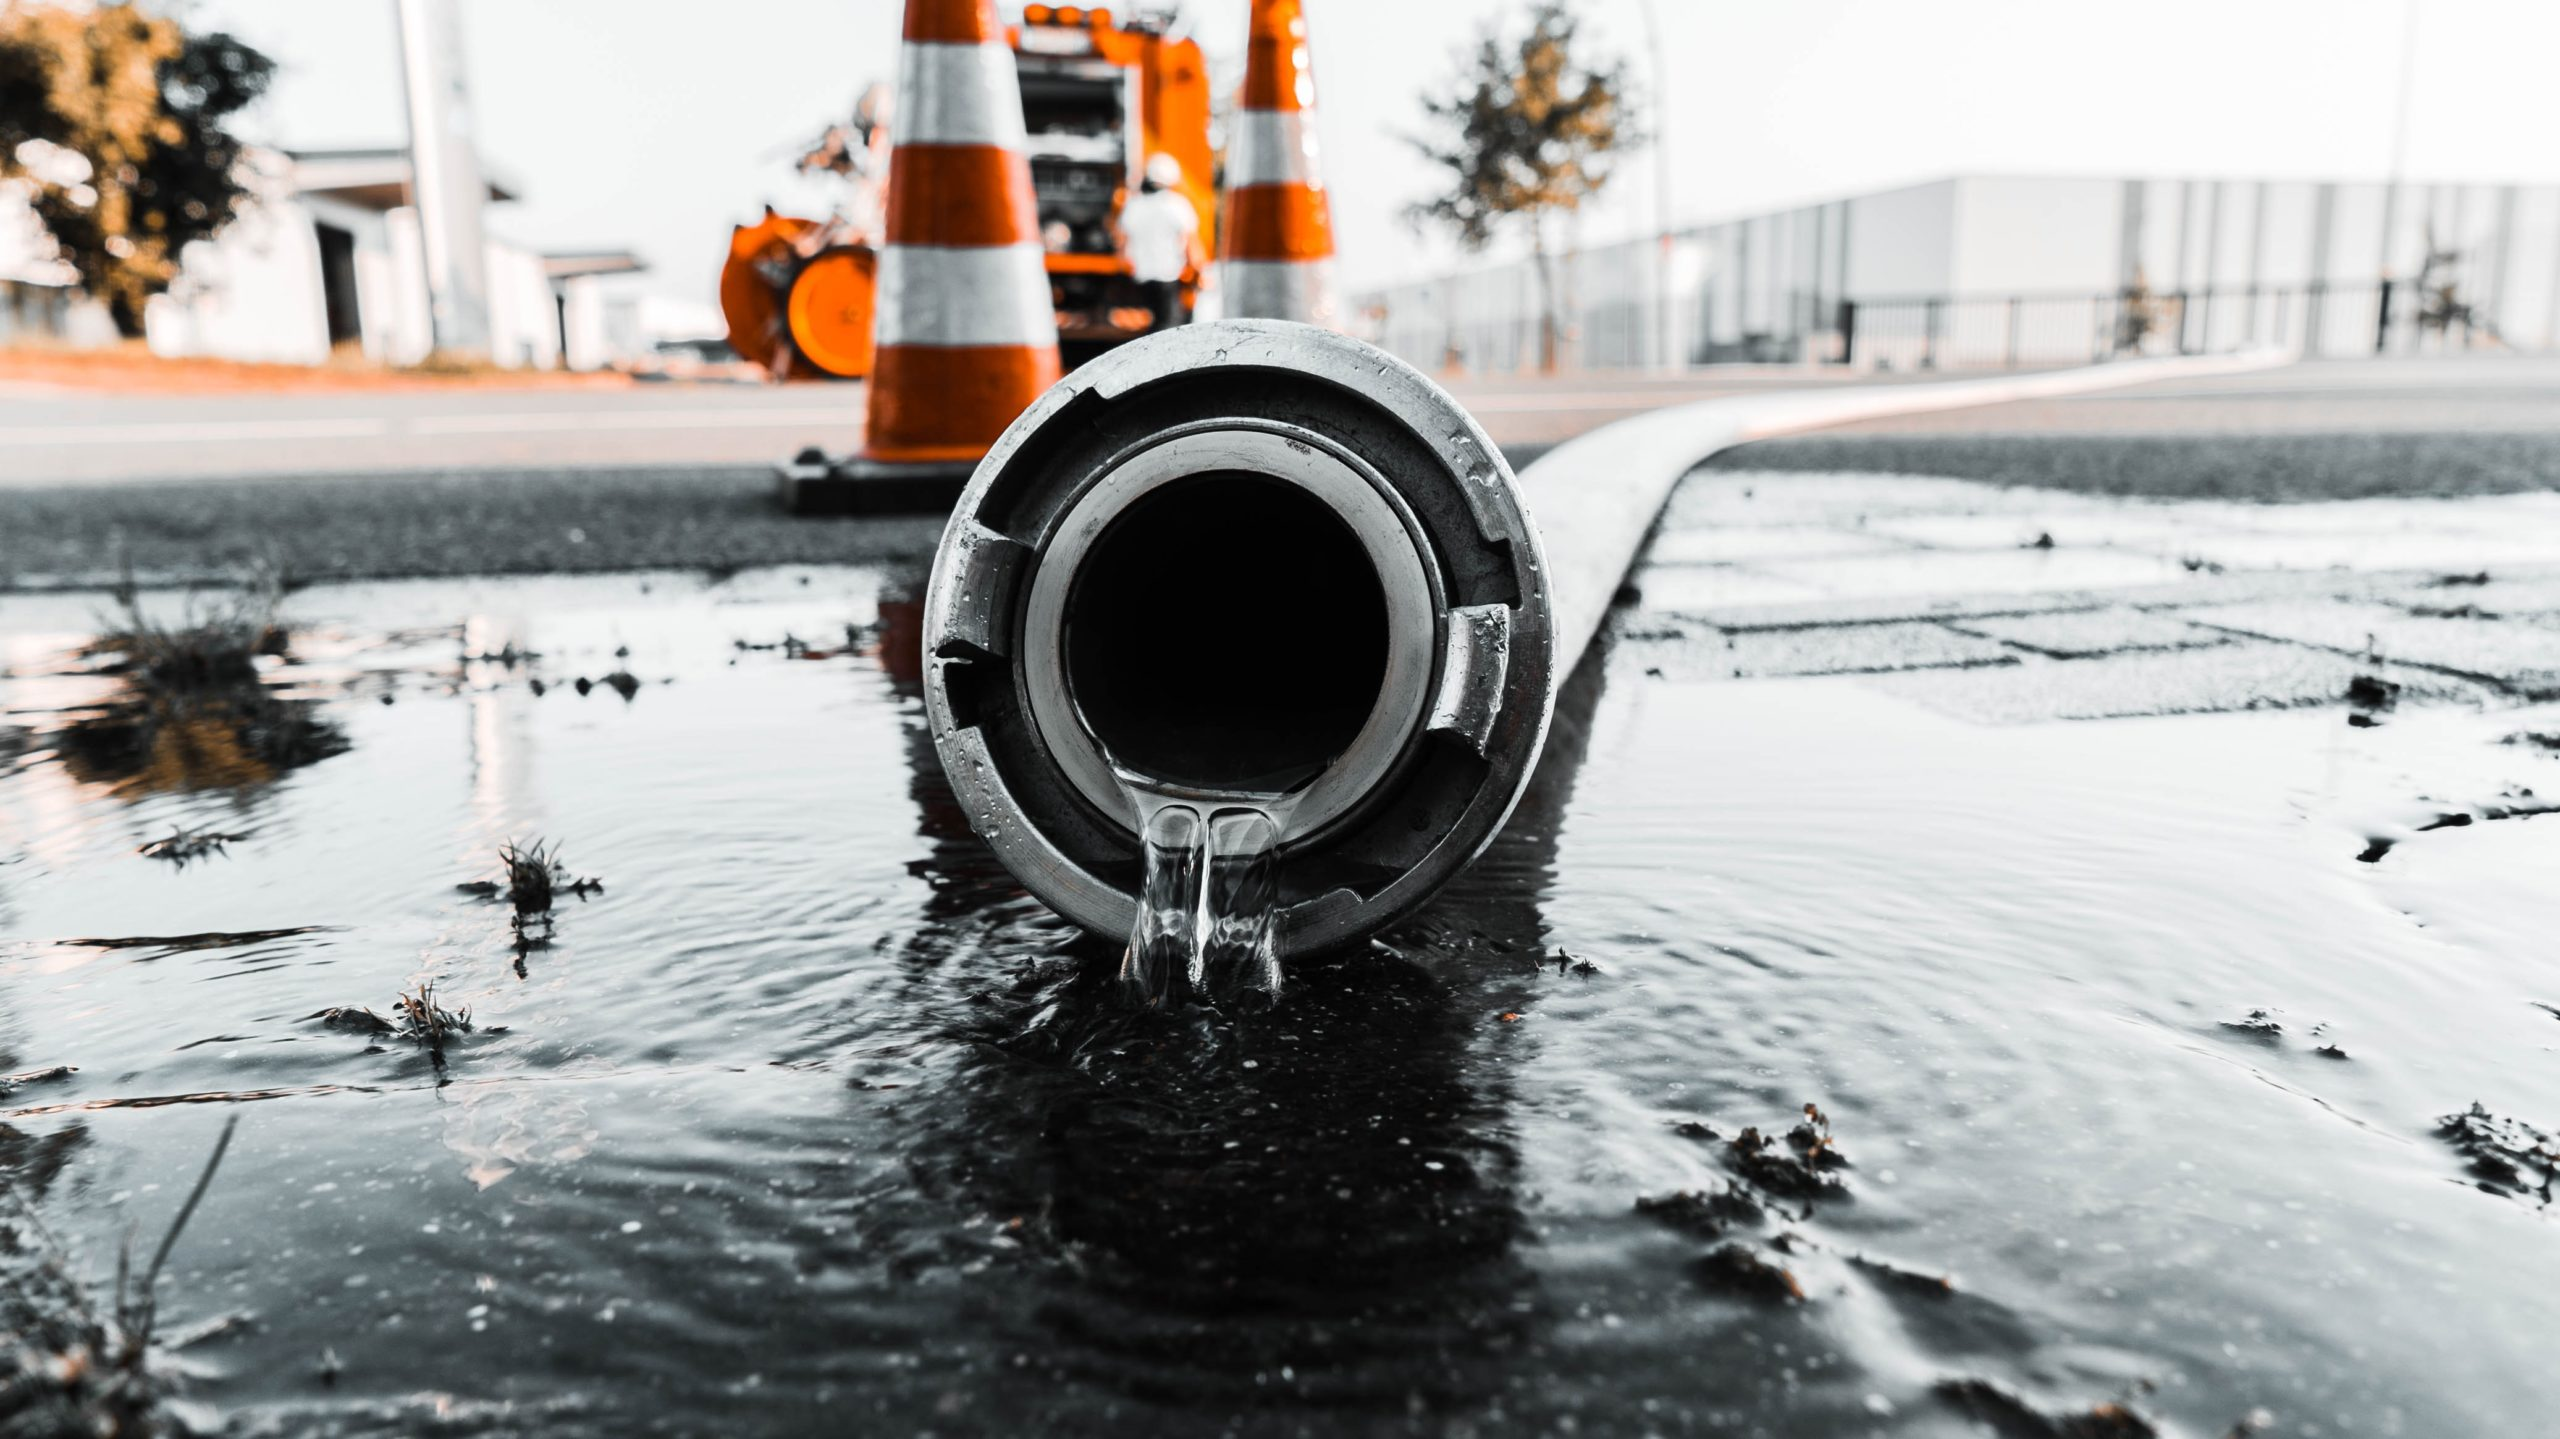 """Water coming out of pipe"" Photo by Daan Mooij on Unsplash"